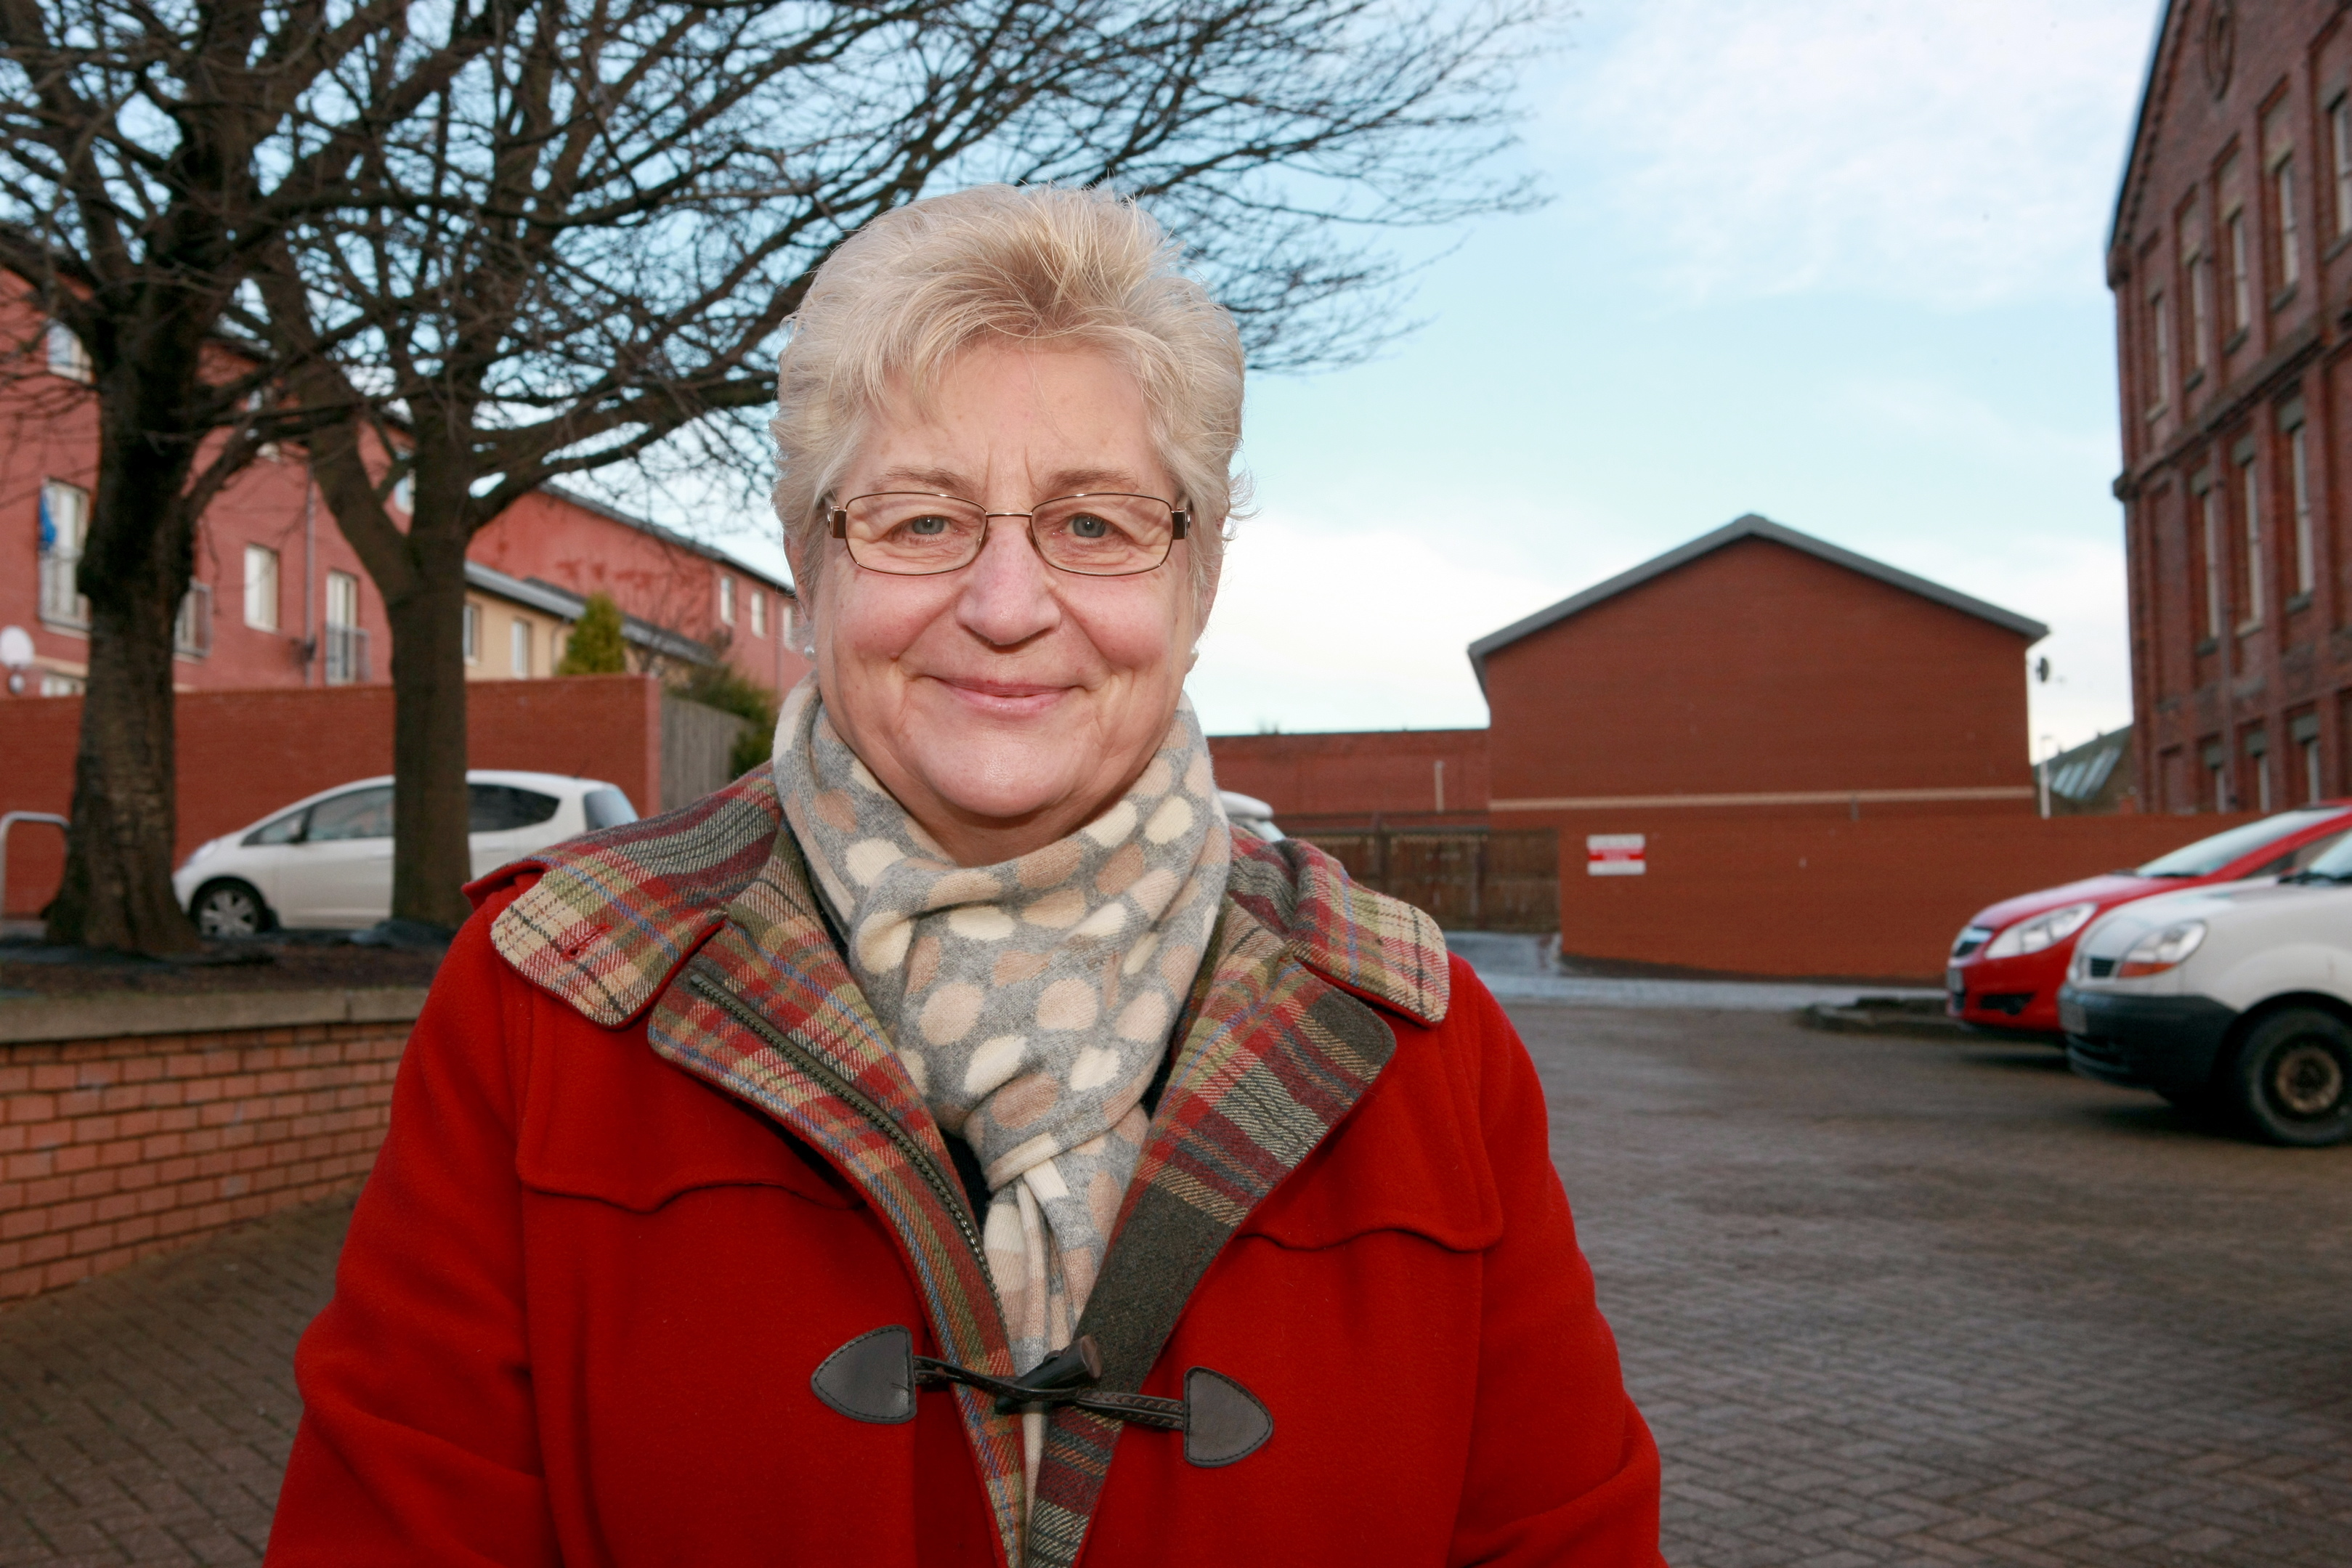 Joyce McIntosh believes the proposed new building will be a boost for the whole area.